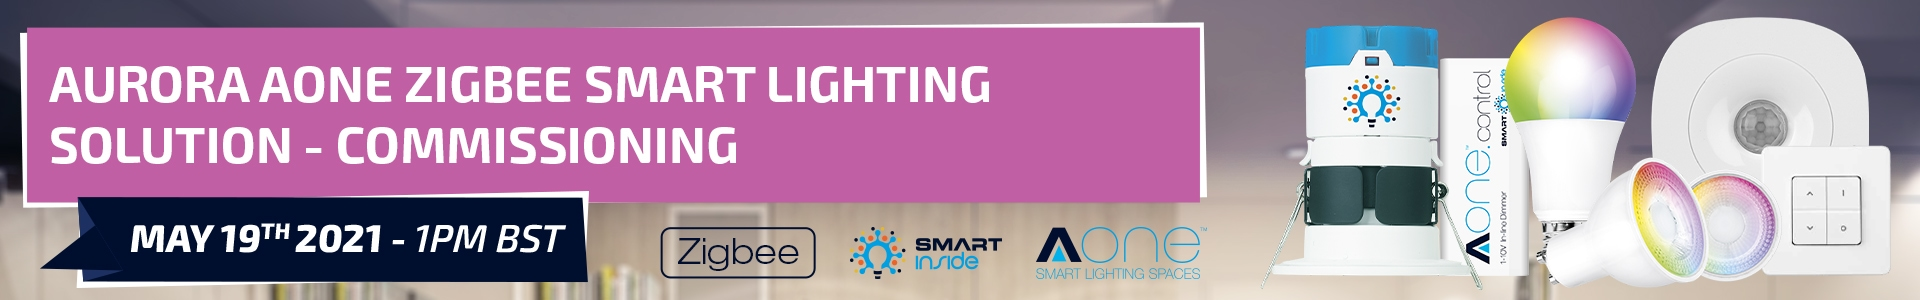 Aurora AOne Zigbee Smart Lighting Solution - Commissioning - May 19th - 1PM BST